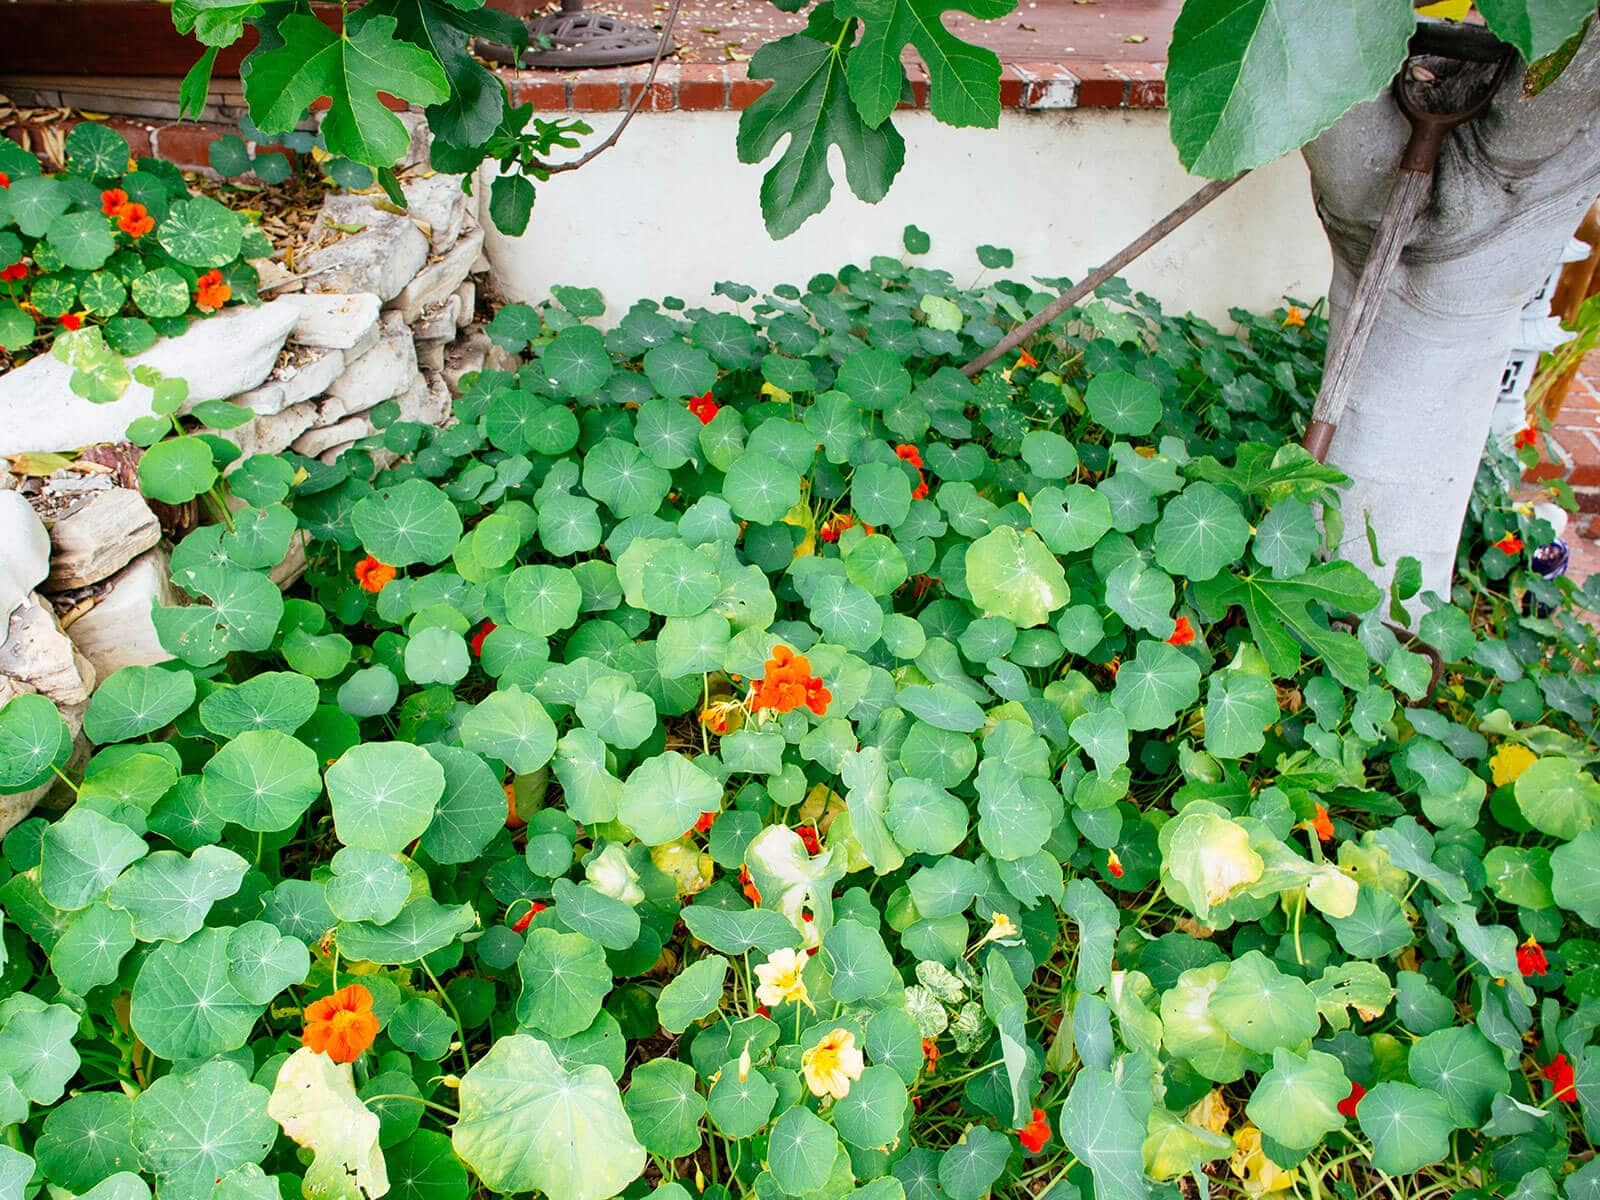 Plant nasturtiums as edible ground covers and trap crops in vegetable gardens